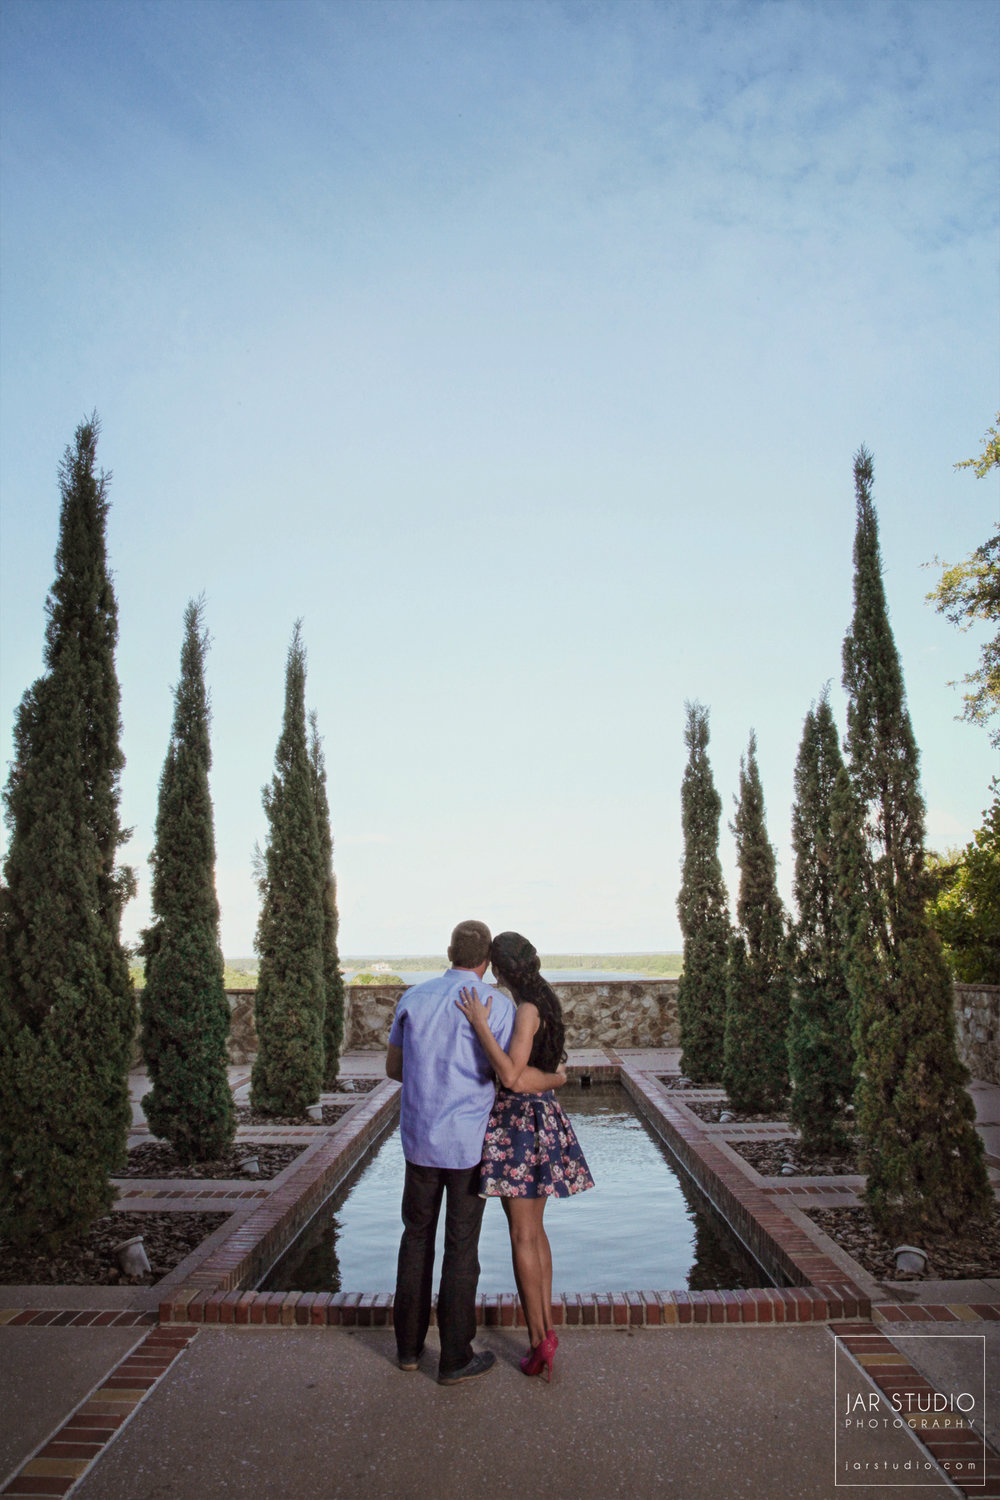 07-unique-tuscan-bella-collina-engagement-jarstudio.jpg